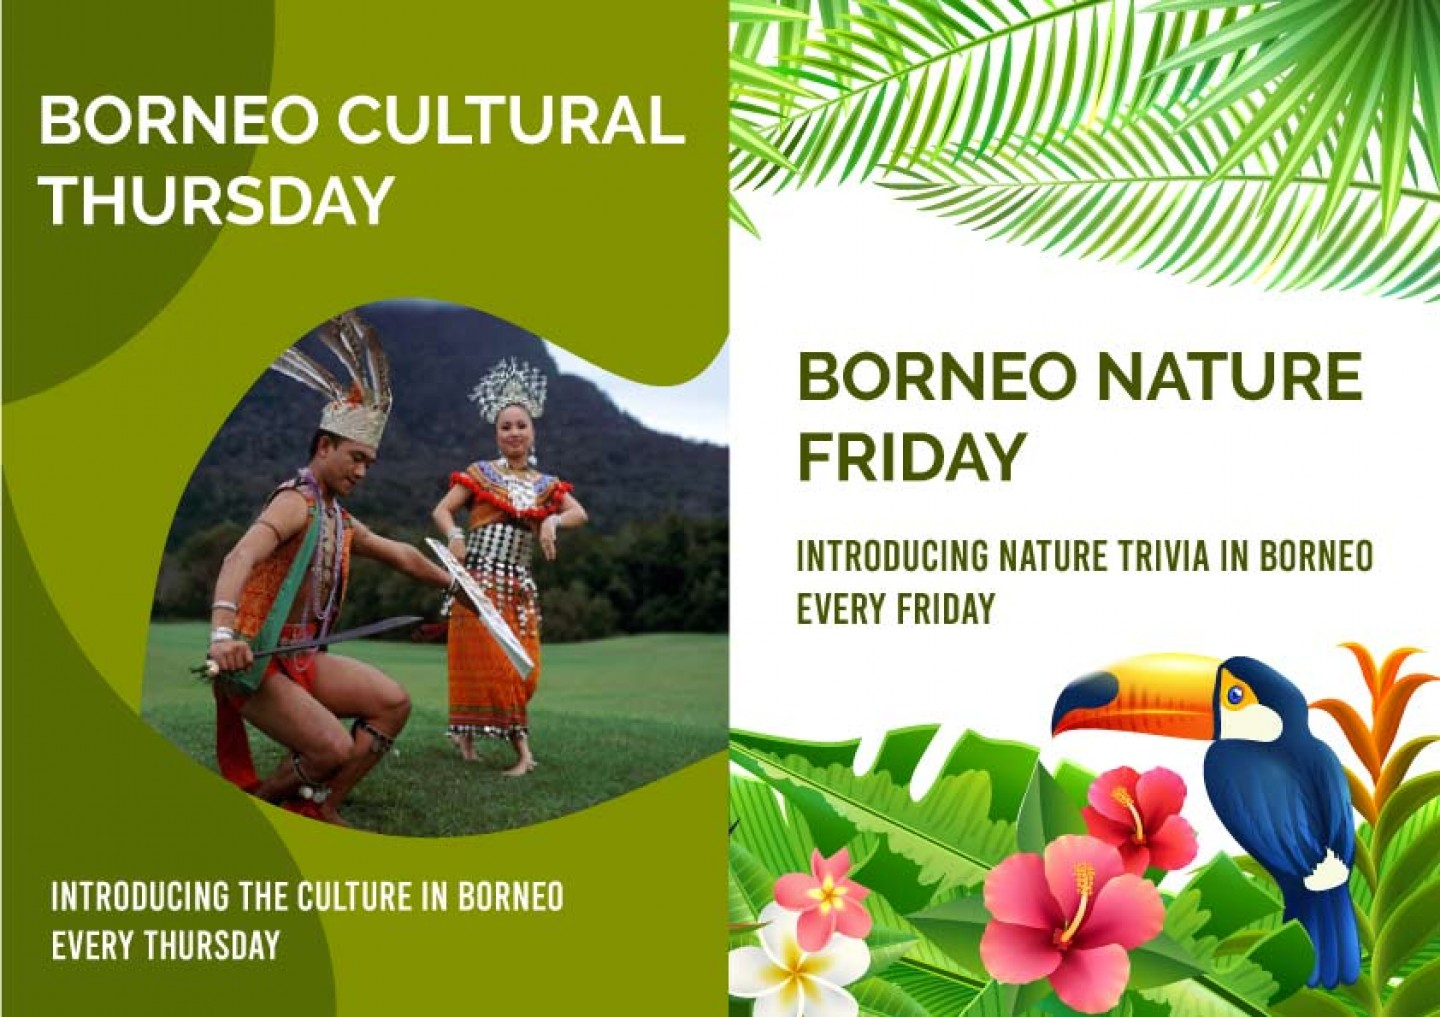 borneo-thursday-friday